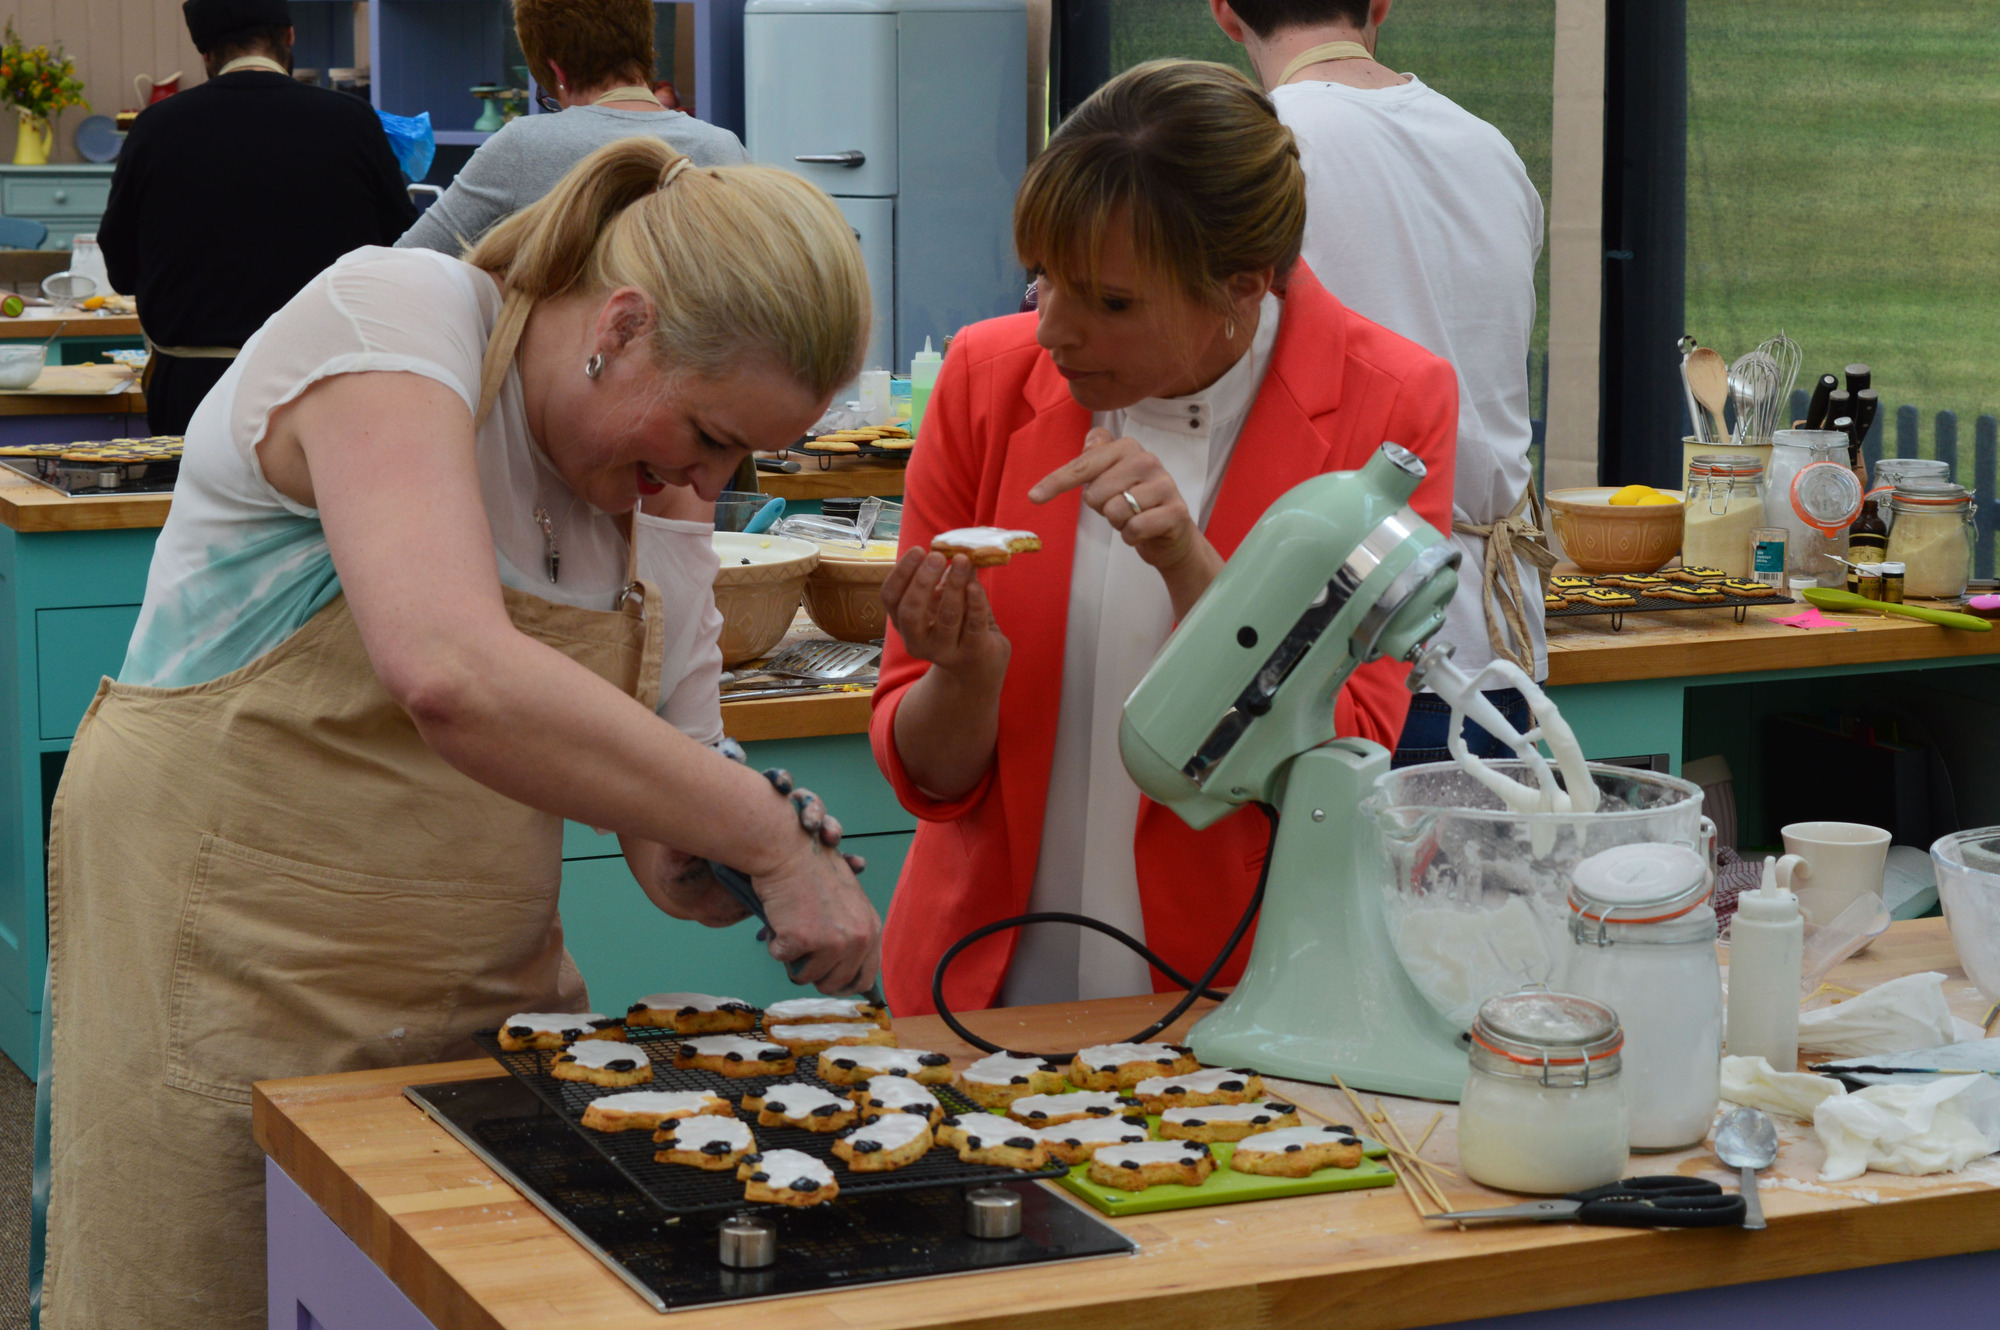 The Great British Bake Off 2016 episode 2: Here's everything that happened during Biscuit Week